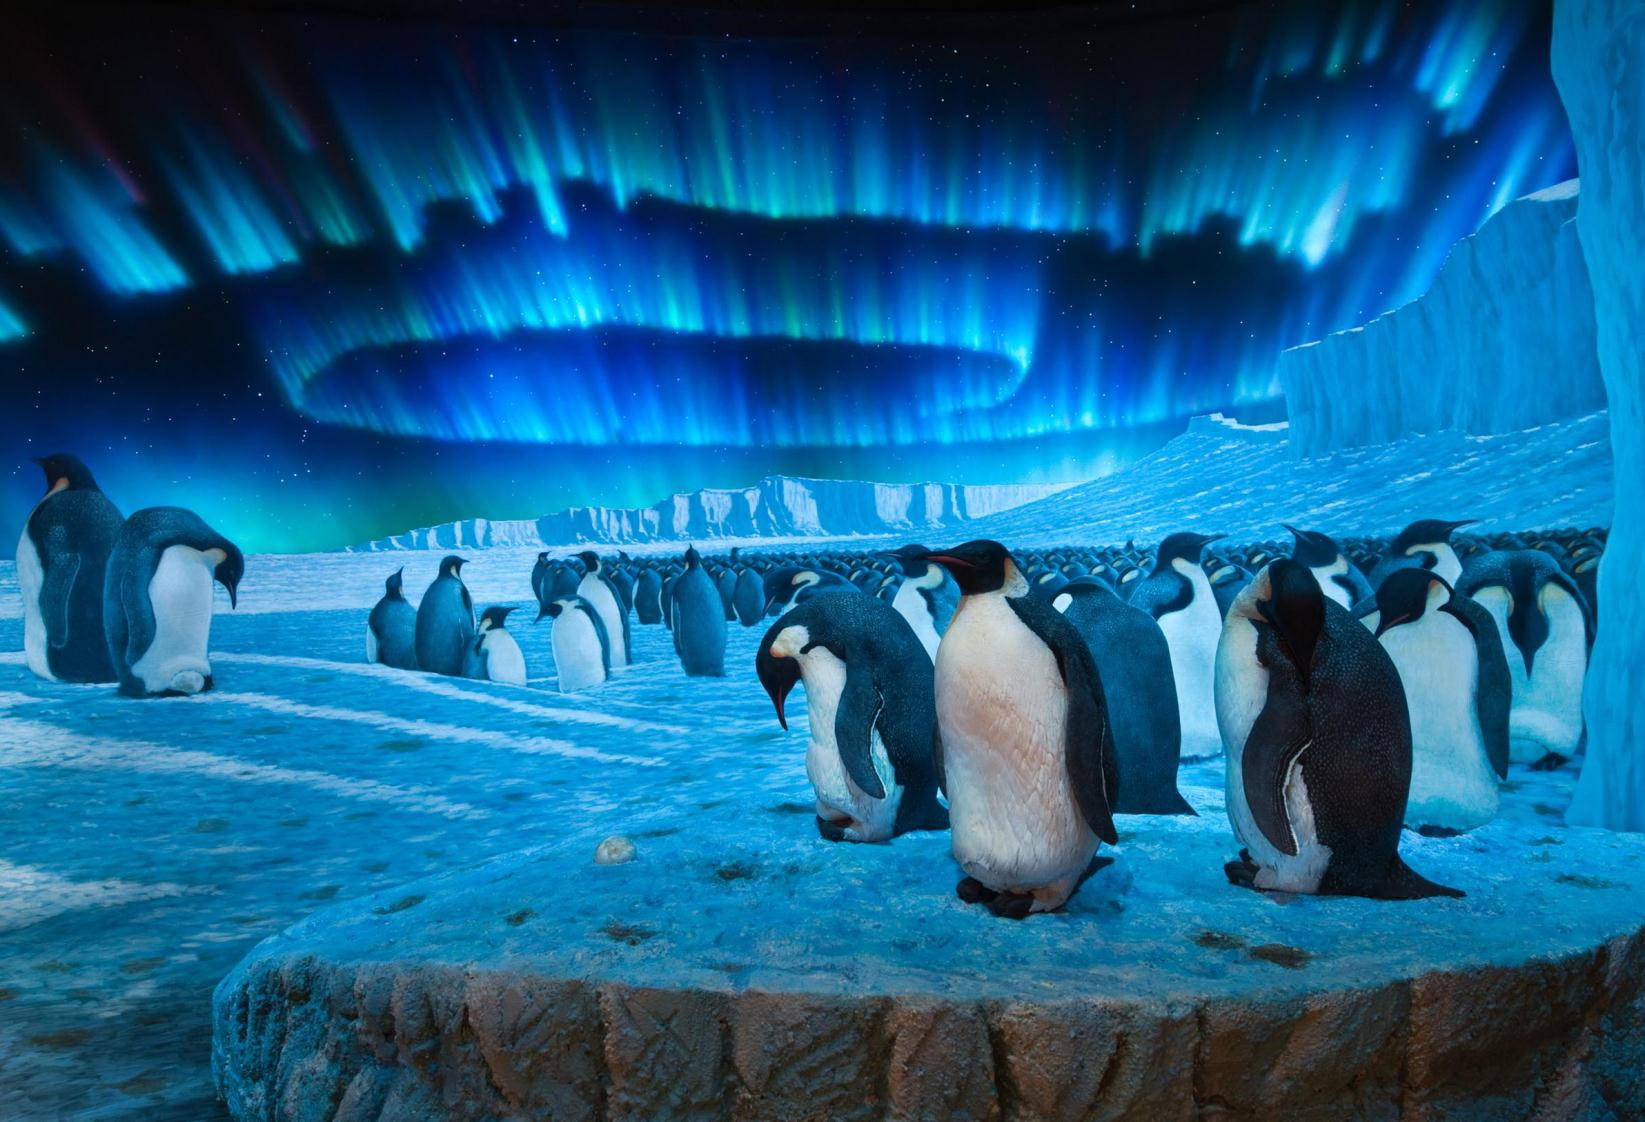 Wallpapers Tagged With Penguins Harbor Emperor Sea Weddell Safe